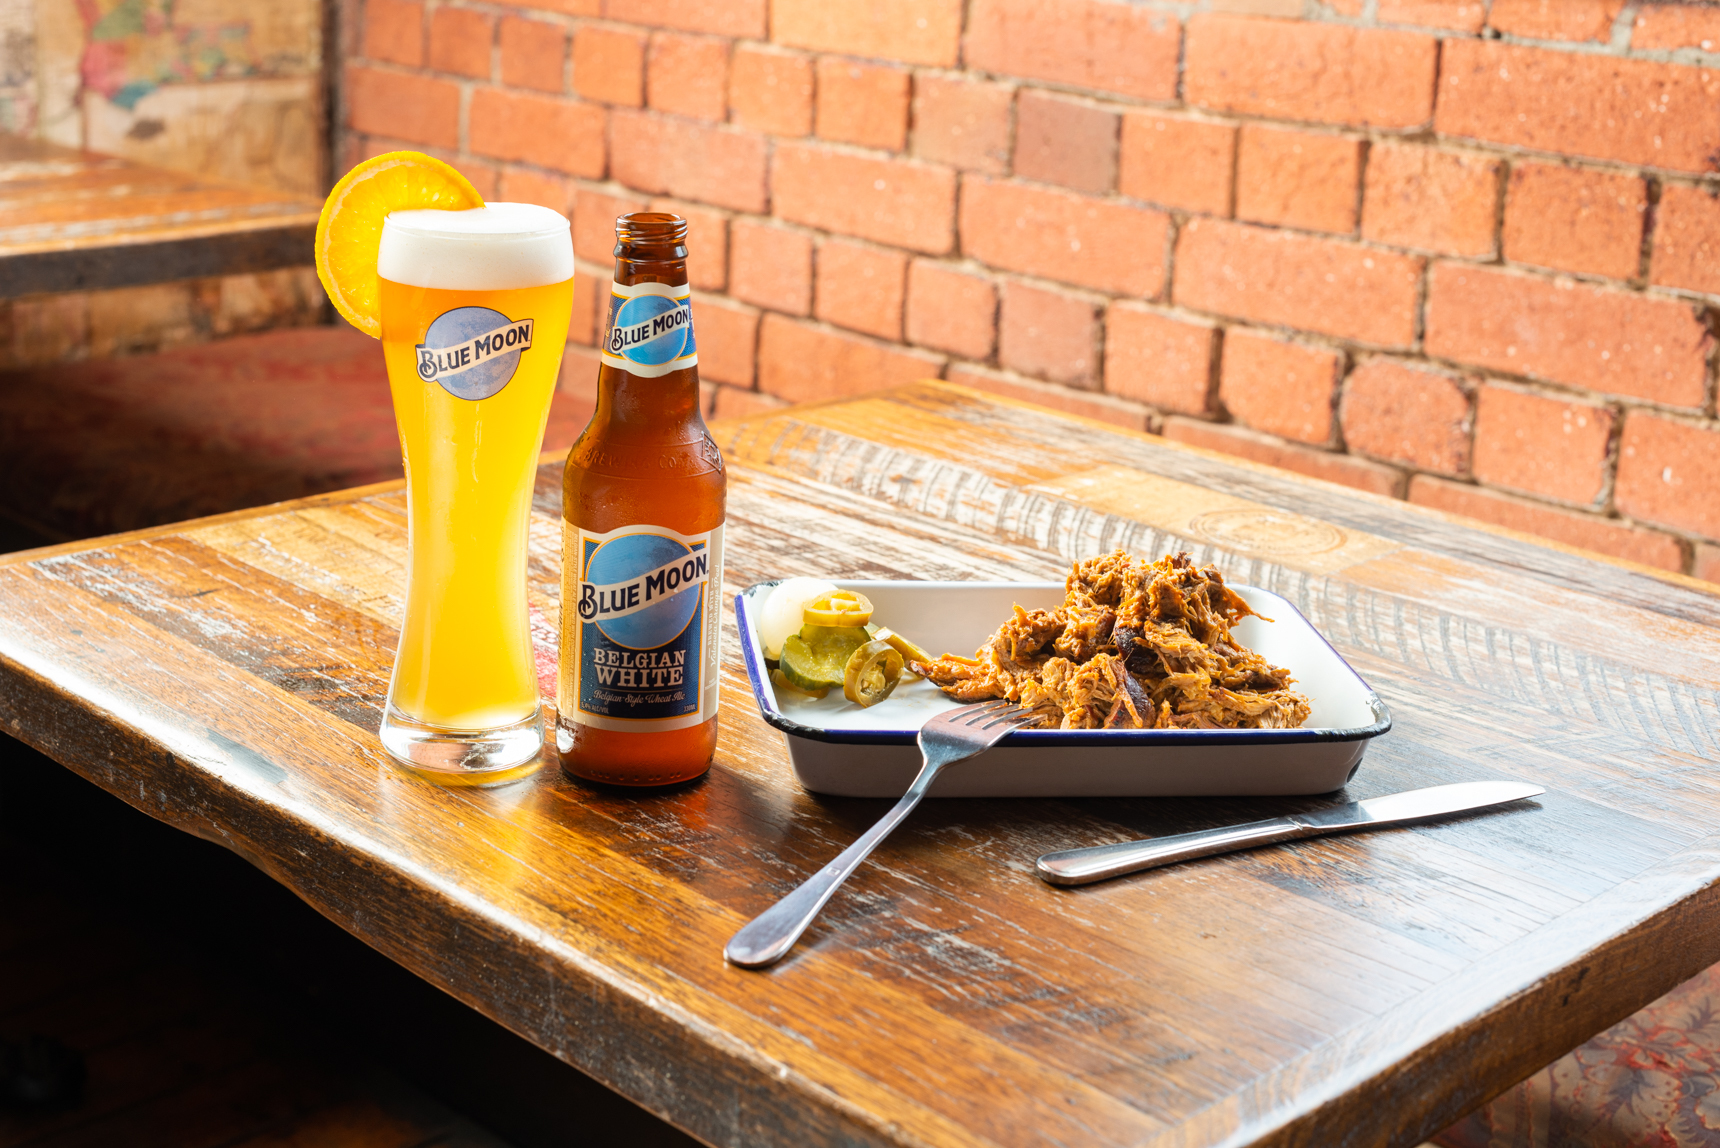 Pulled pork and a Blue Moon wheat beer